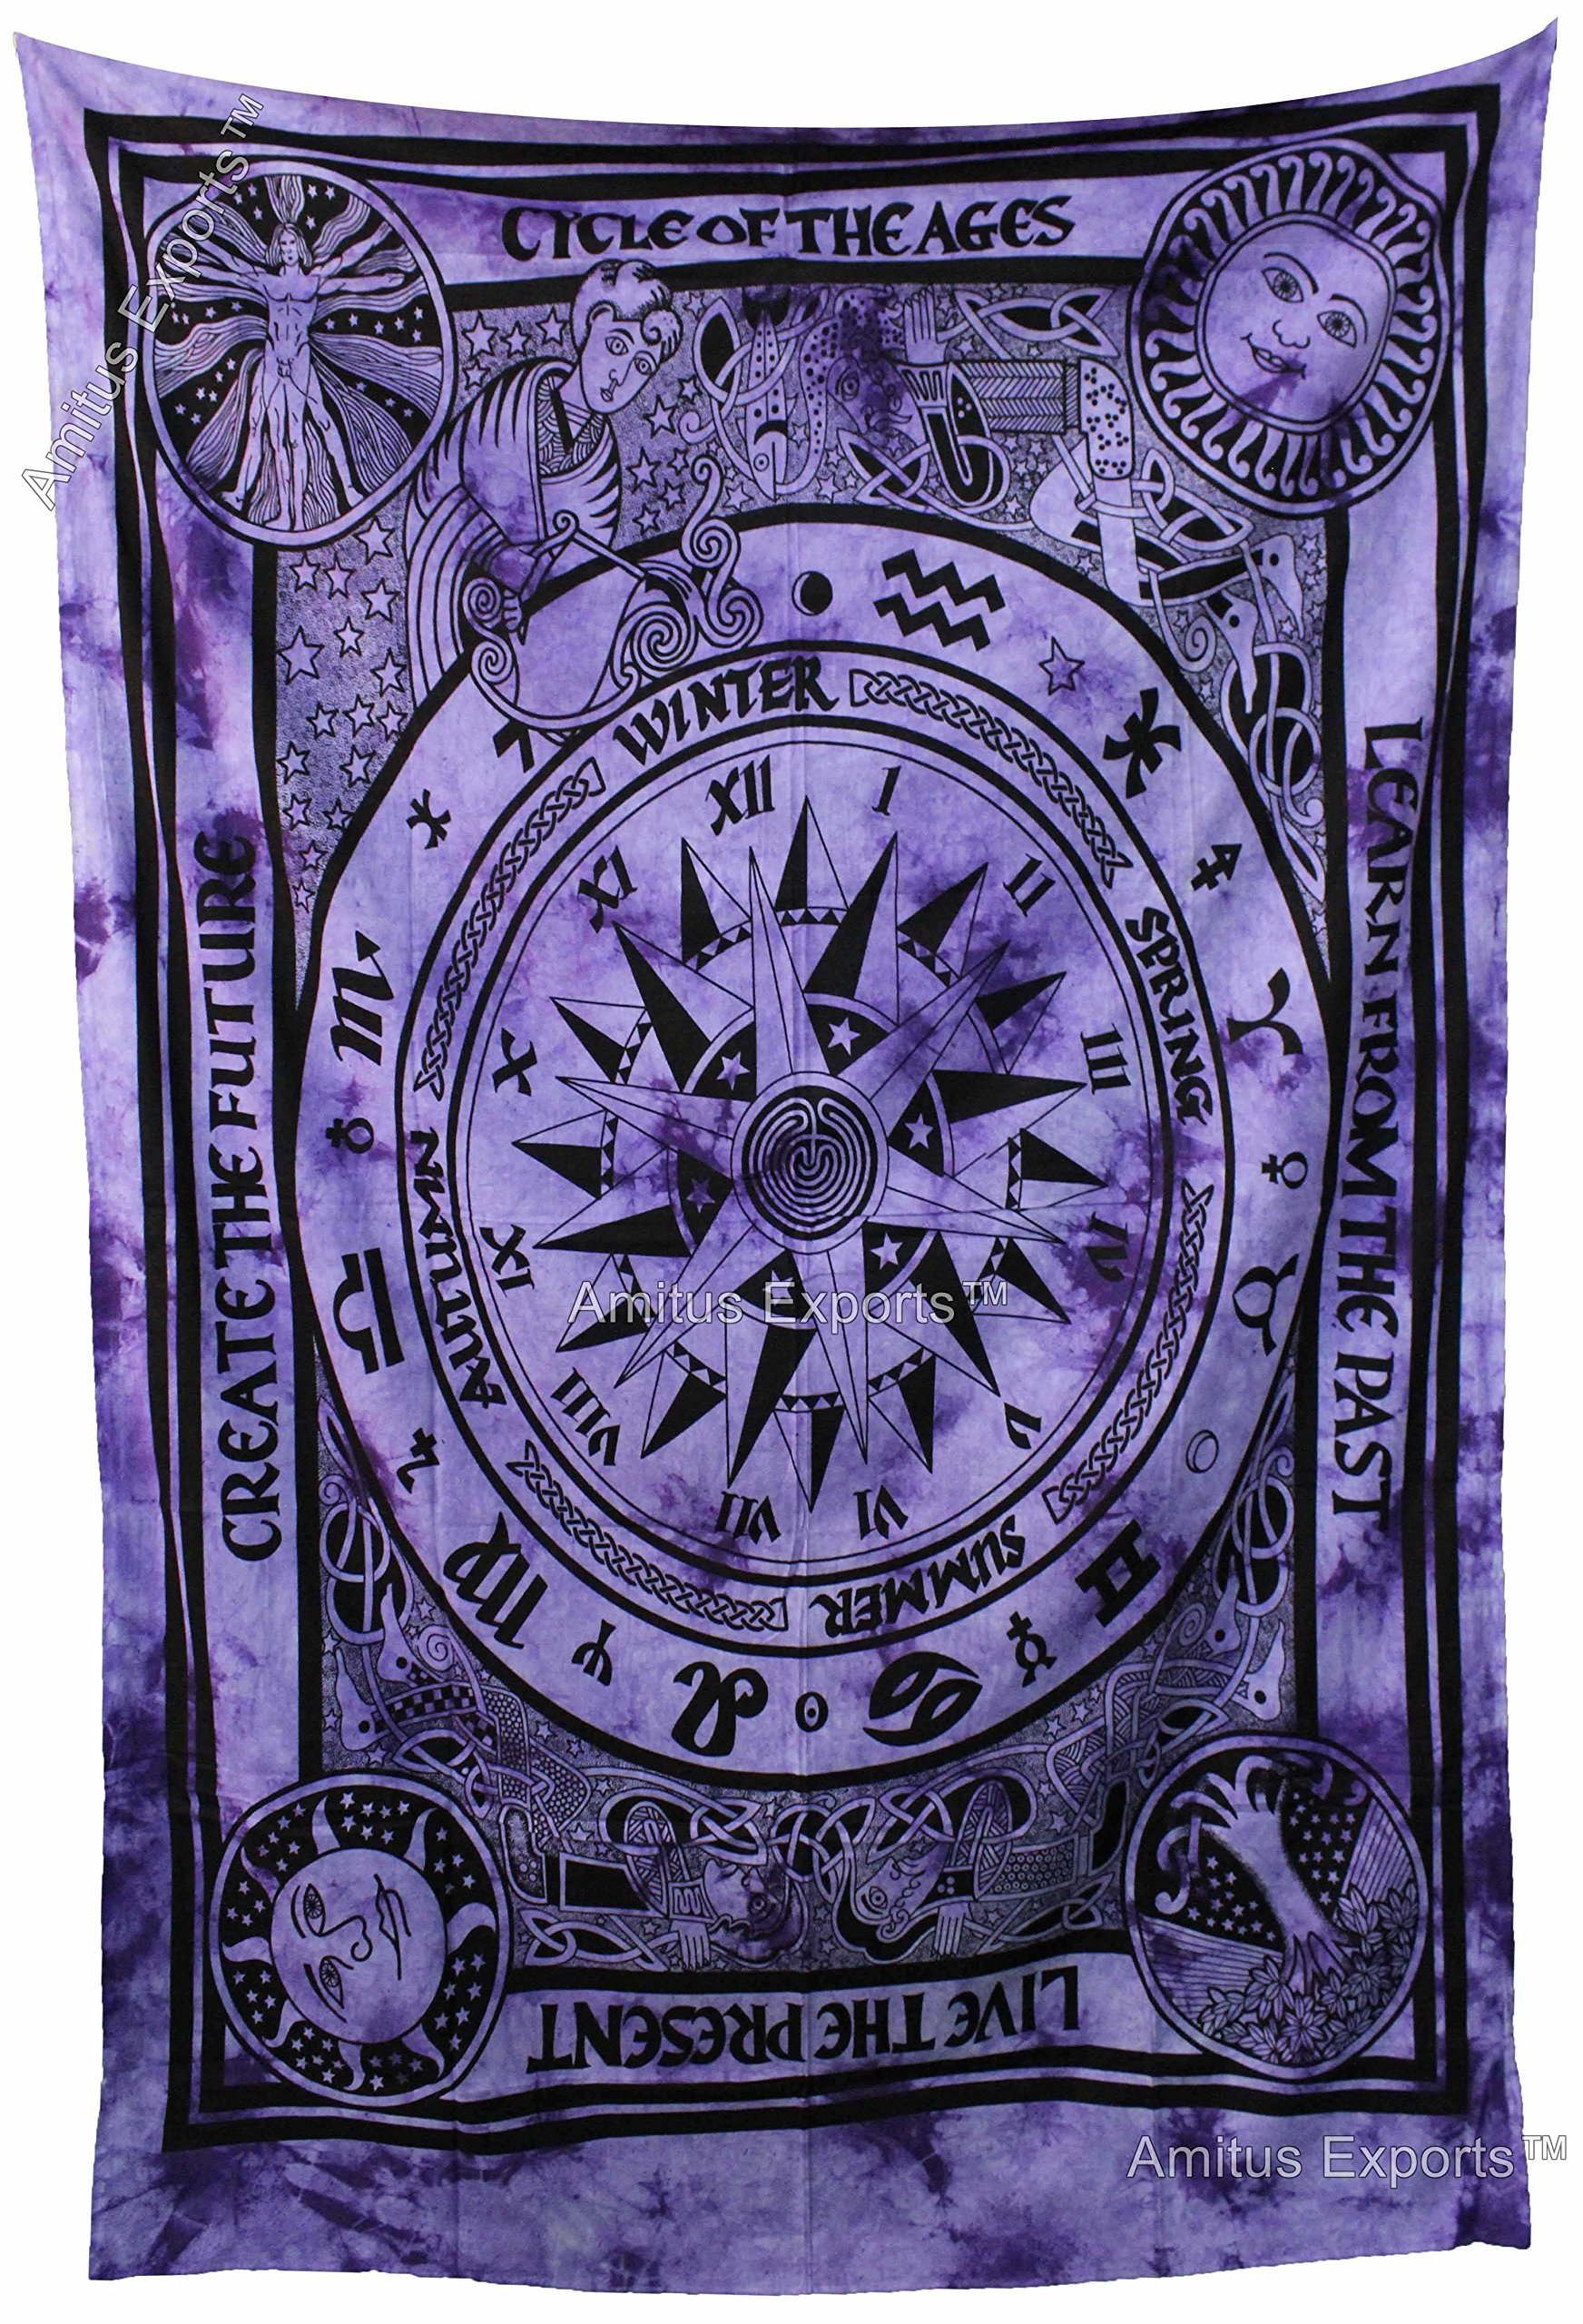 Amitus Exports TM Premium Quality 1 X Cycle Of Ages 80''X57''(Approx.) Inches Purple Color Twin Size Cotton Fabric Tapestry Hippy Indian Mandala Throws (Handmade In India)